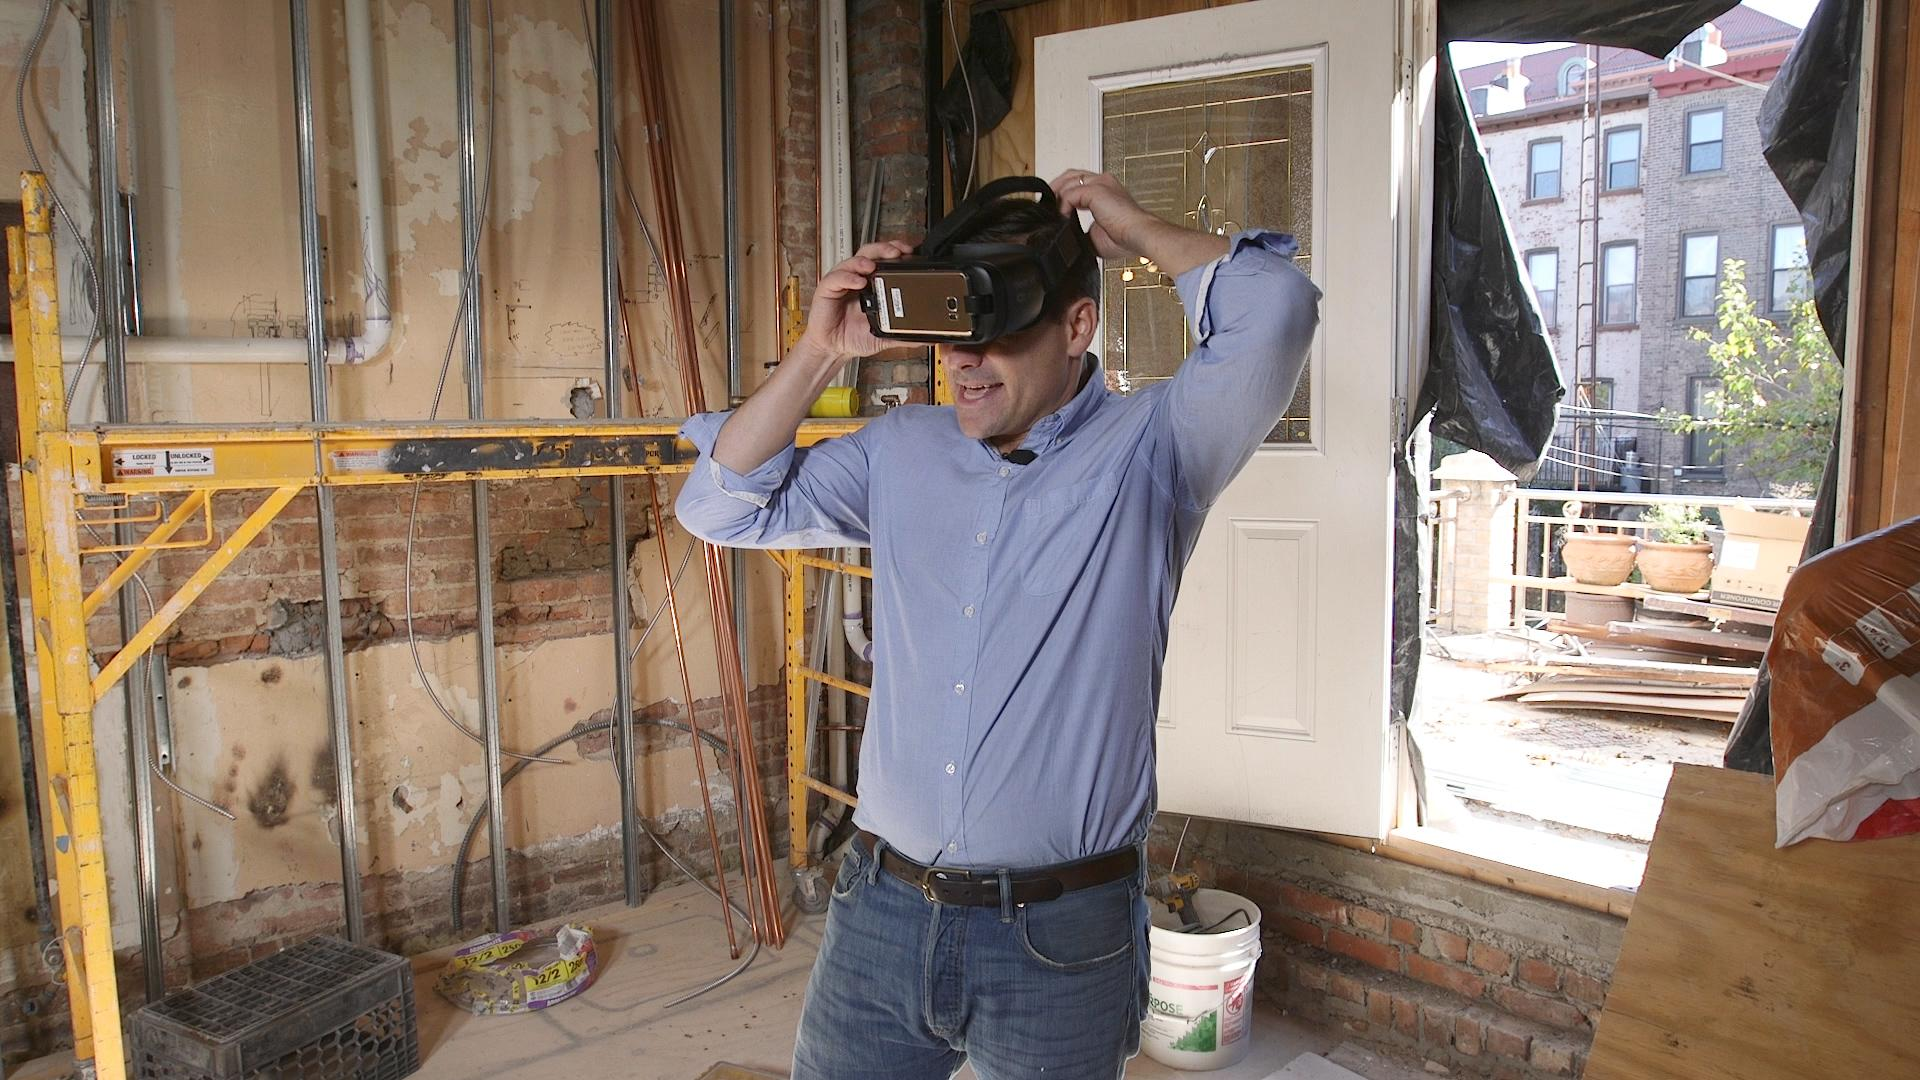 use virtual reality to visualize your home renovation - Consumer Reports Best Bathroom Cleaner